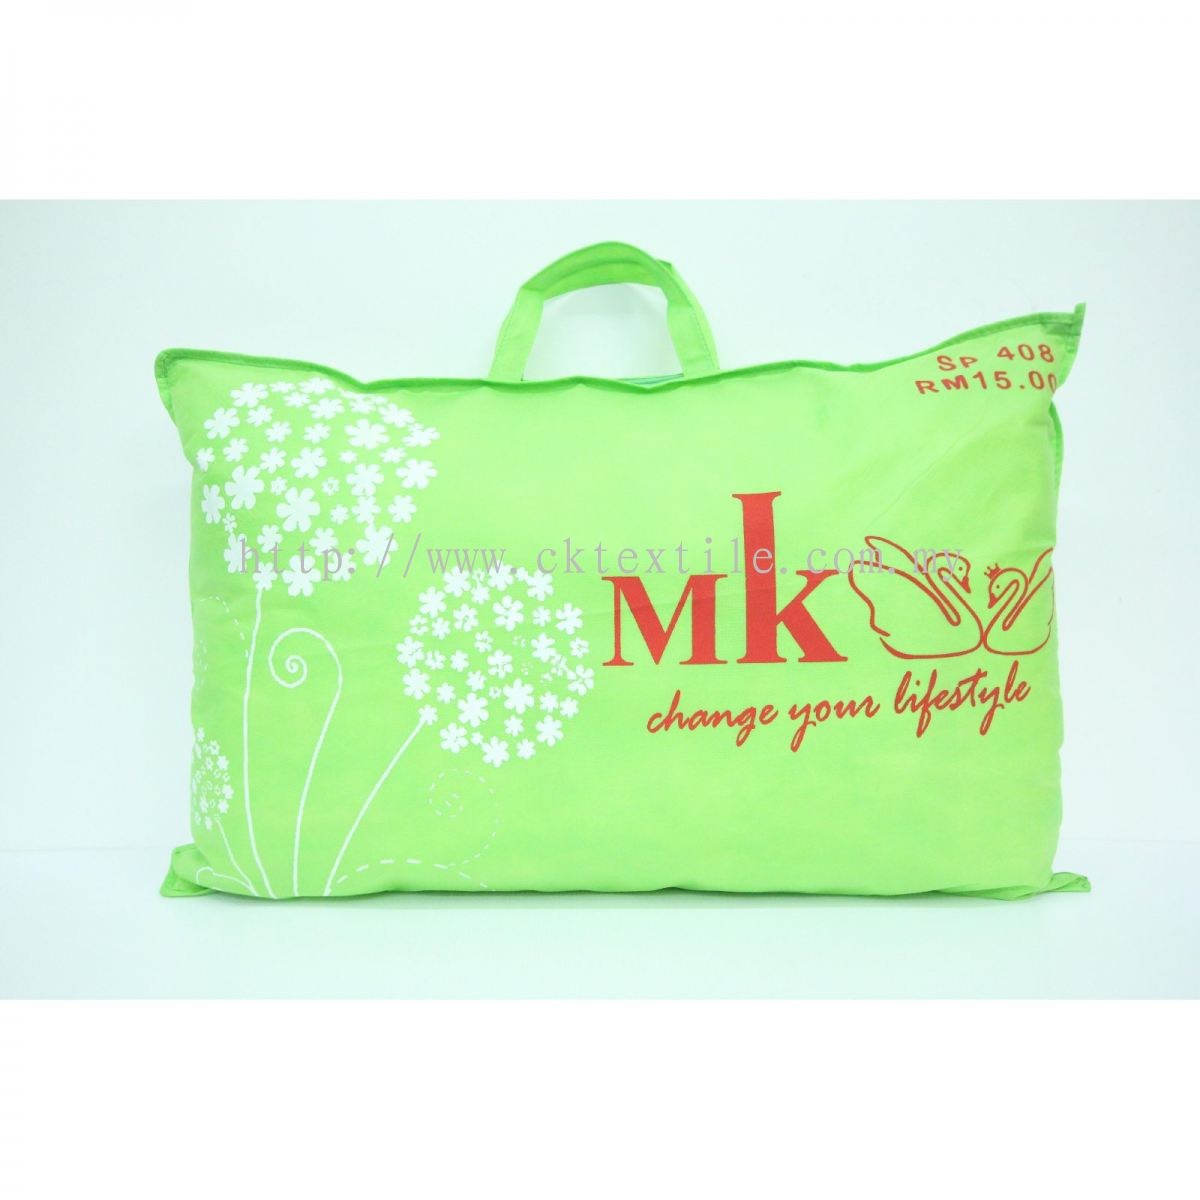 My-pillow-factory Klang Pillow Bed Sheets Mattresses Daripada Mk Curtain Group